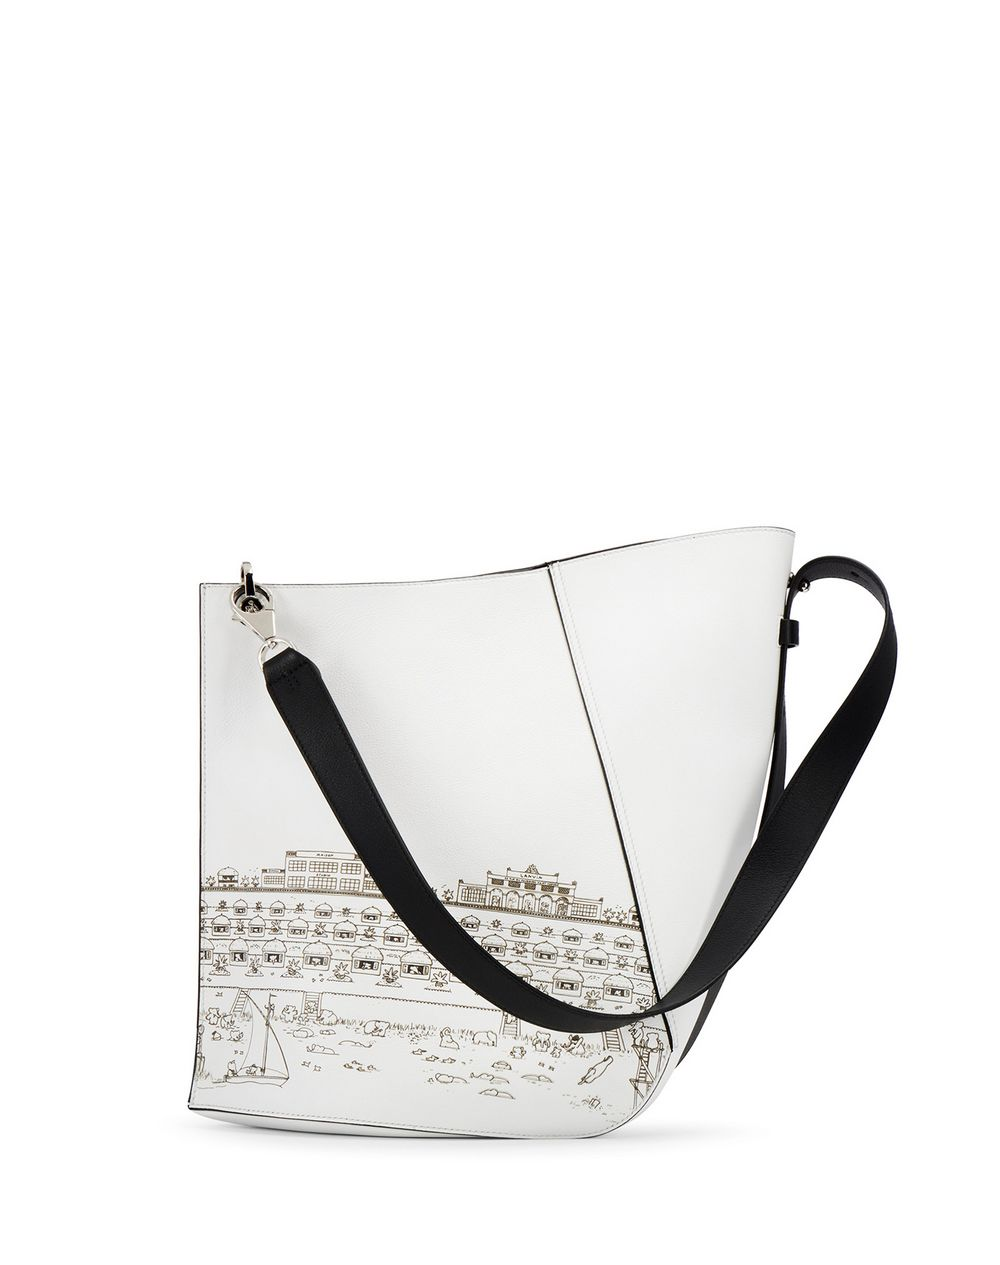 HOOK BABAR PRINT BAG MEDIUM - Lanvin